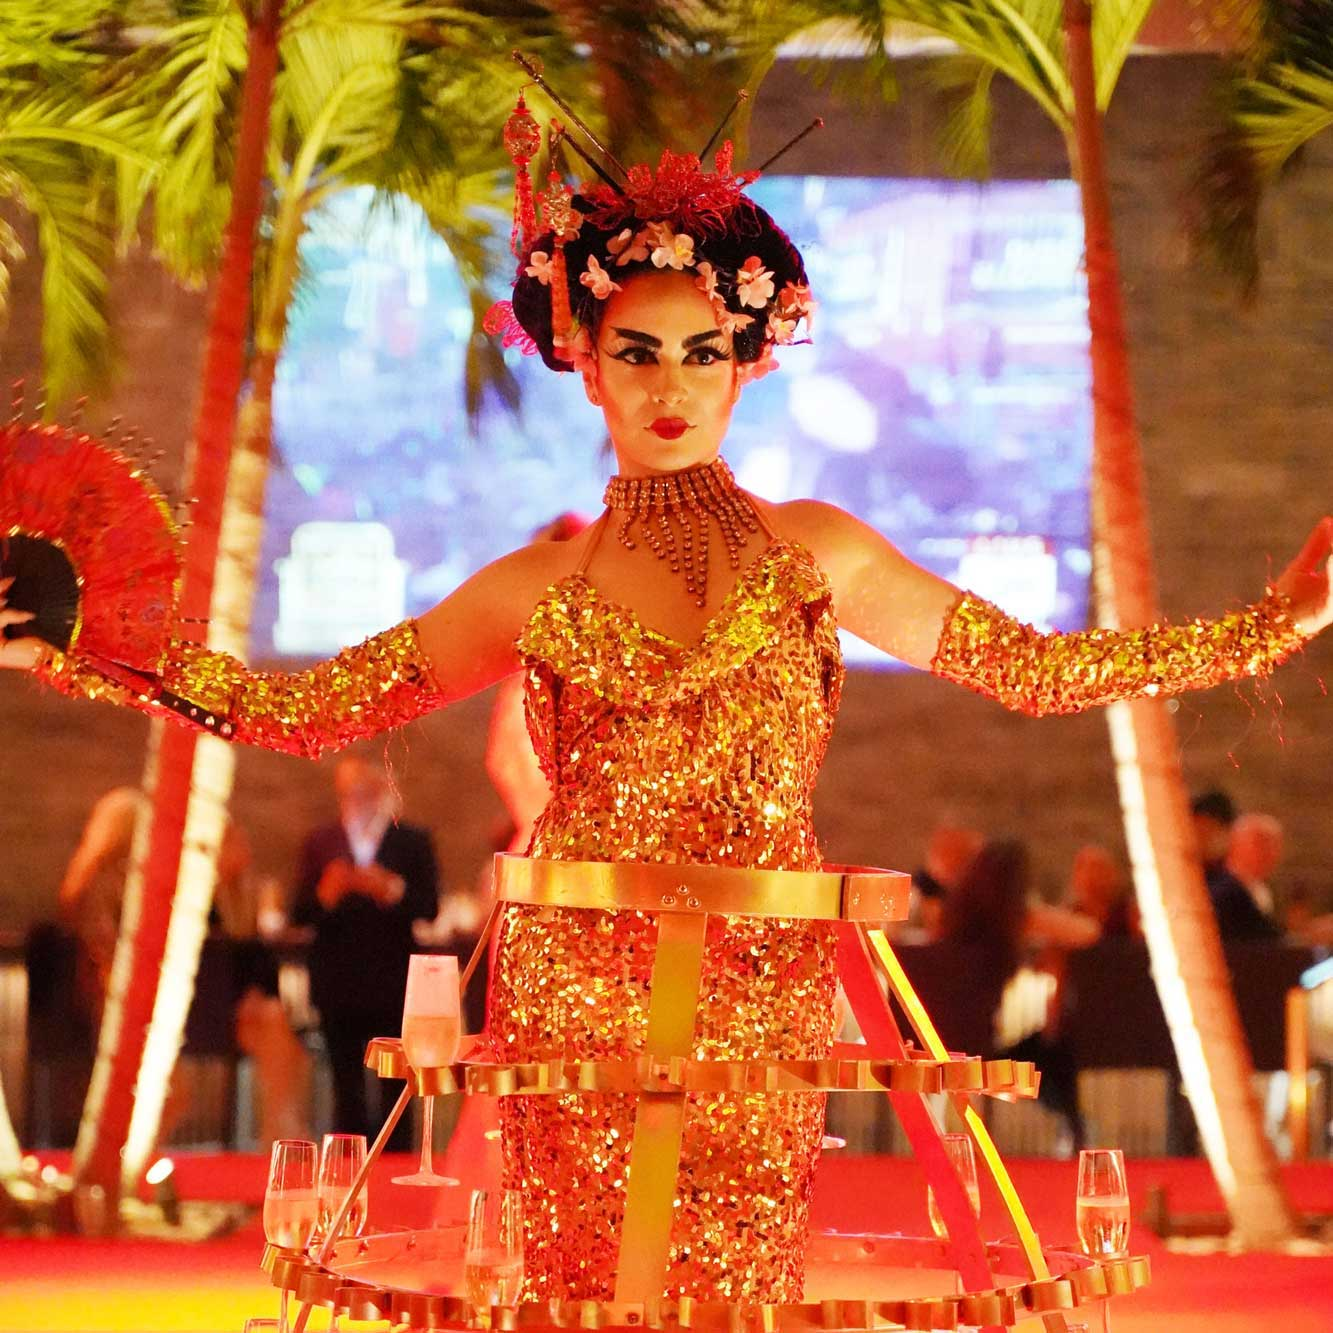 Macau-at-Midnight-at-The-Setai---New-Years-Eve-2019---The-Brand-Collective-11